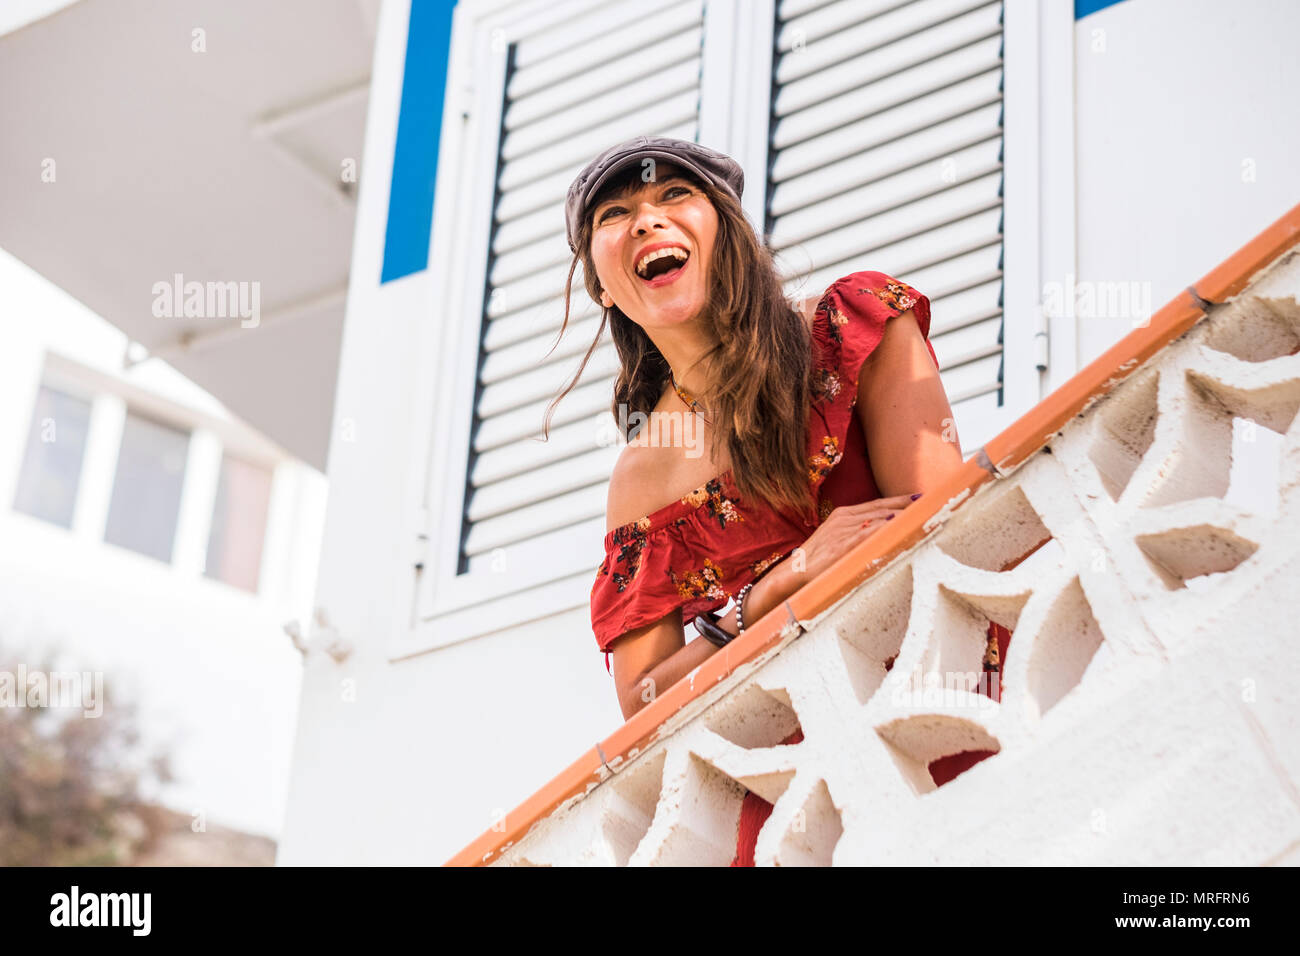 big smile and laugh for happiness and enjoying concept with one beautiful 40 years old caucasian people with white houses in the background. leisure n - Stock Image